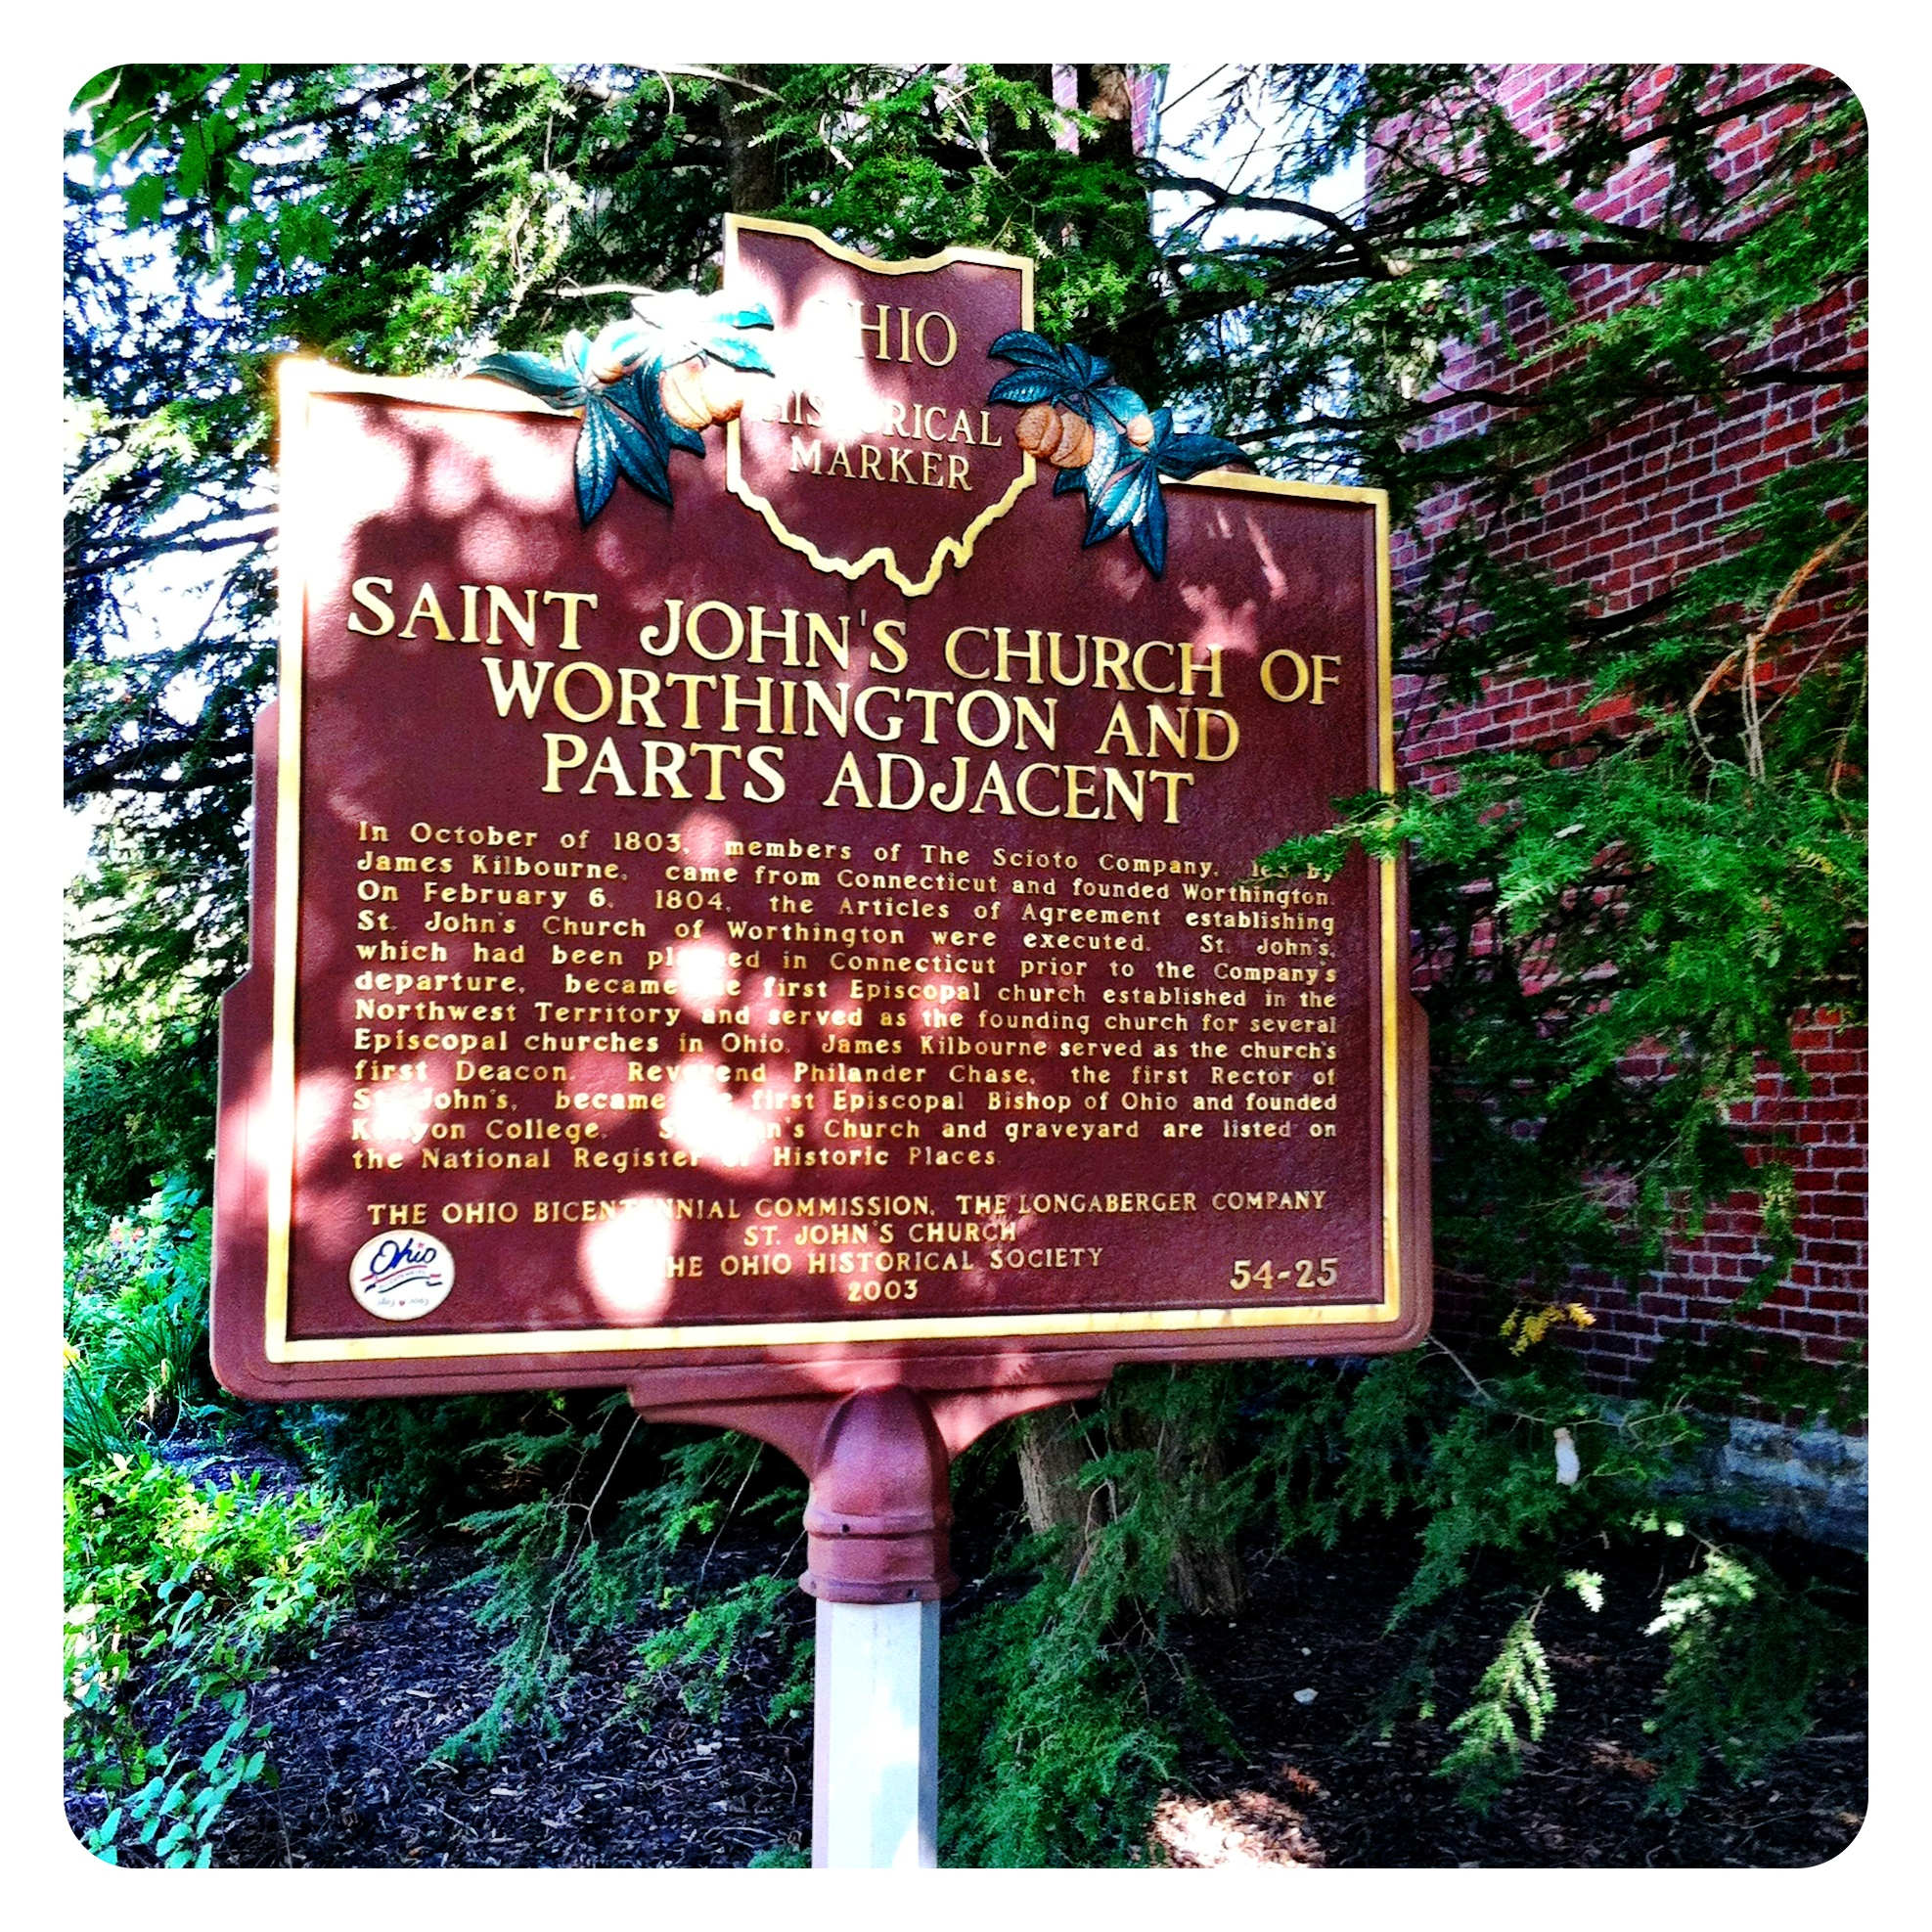 Remarkable Ohio ... Ohio Historical Marker #54-25 Saint John's Church of Worthington and Parts Adjacent